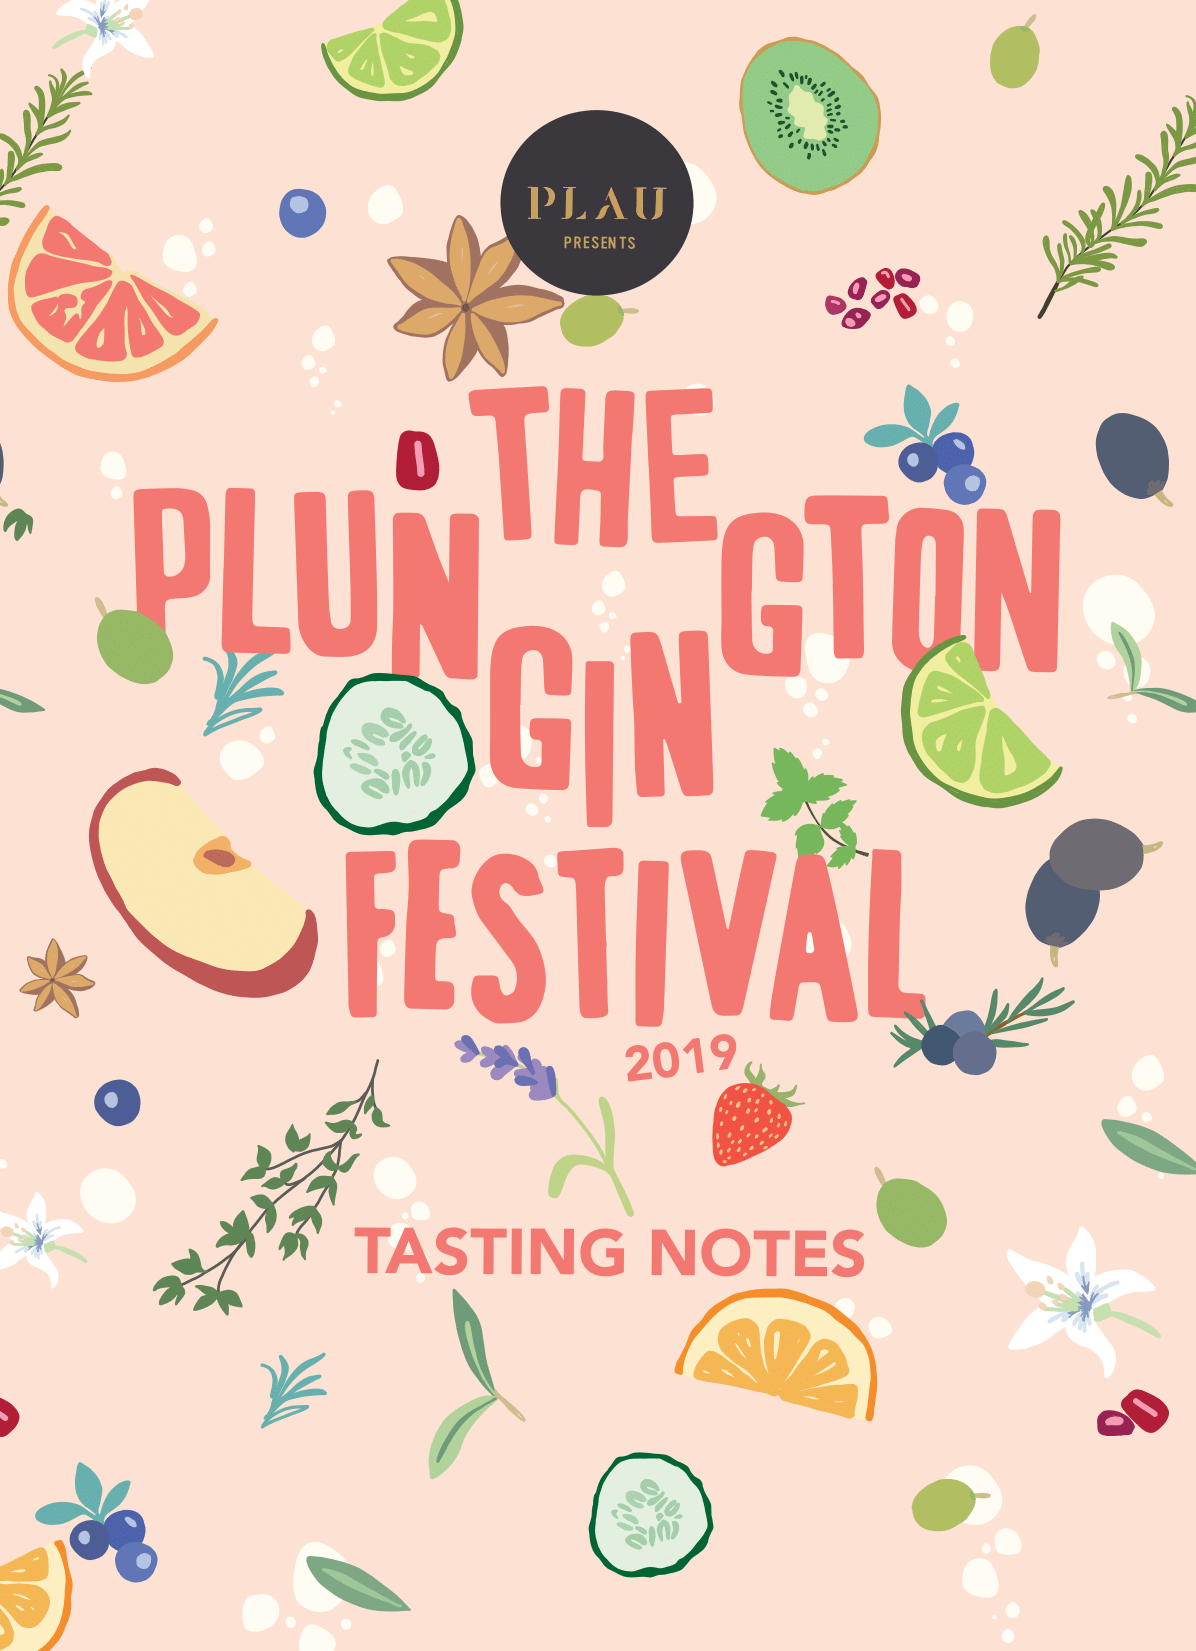 Plung Gin Tasting Notes 19 PRINTREADY-01cropped.png